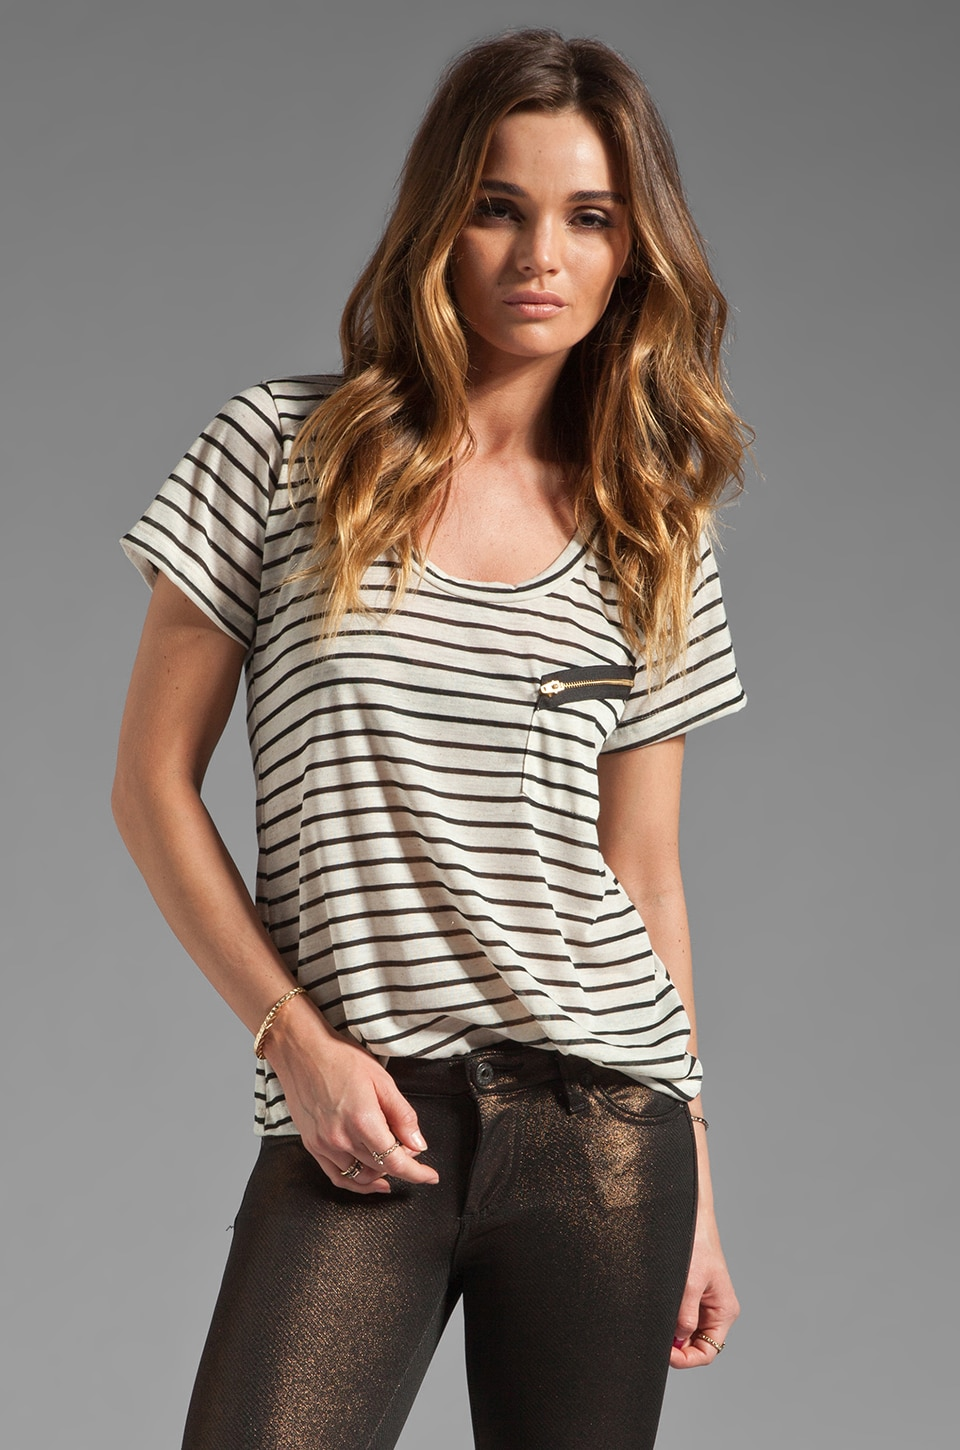 LNA Slant Zipper Pocket Tee in Black/Natural Stripe